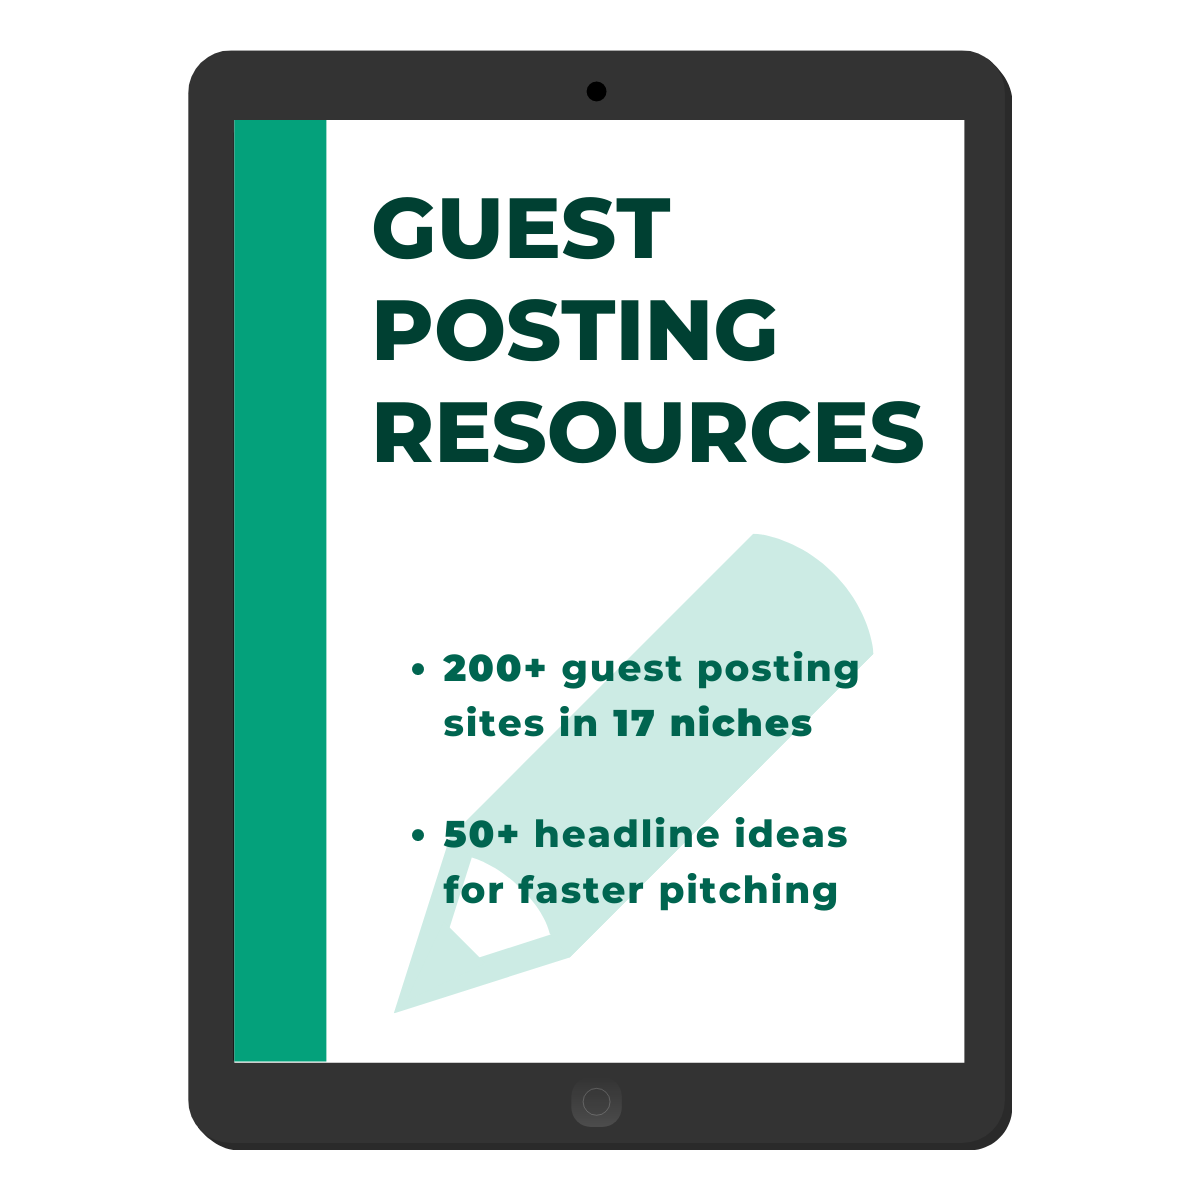 Guest Posting Resources